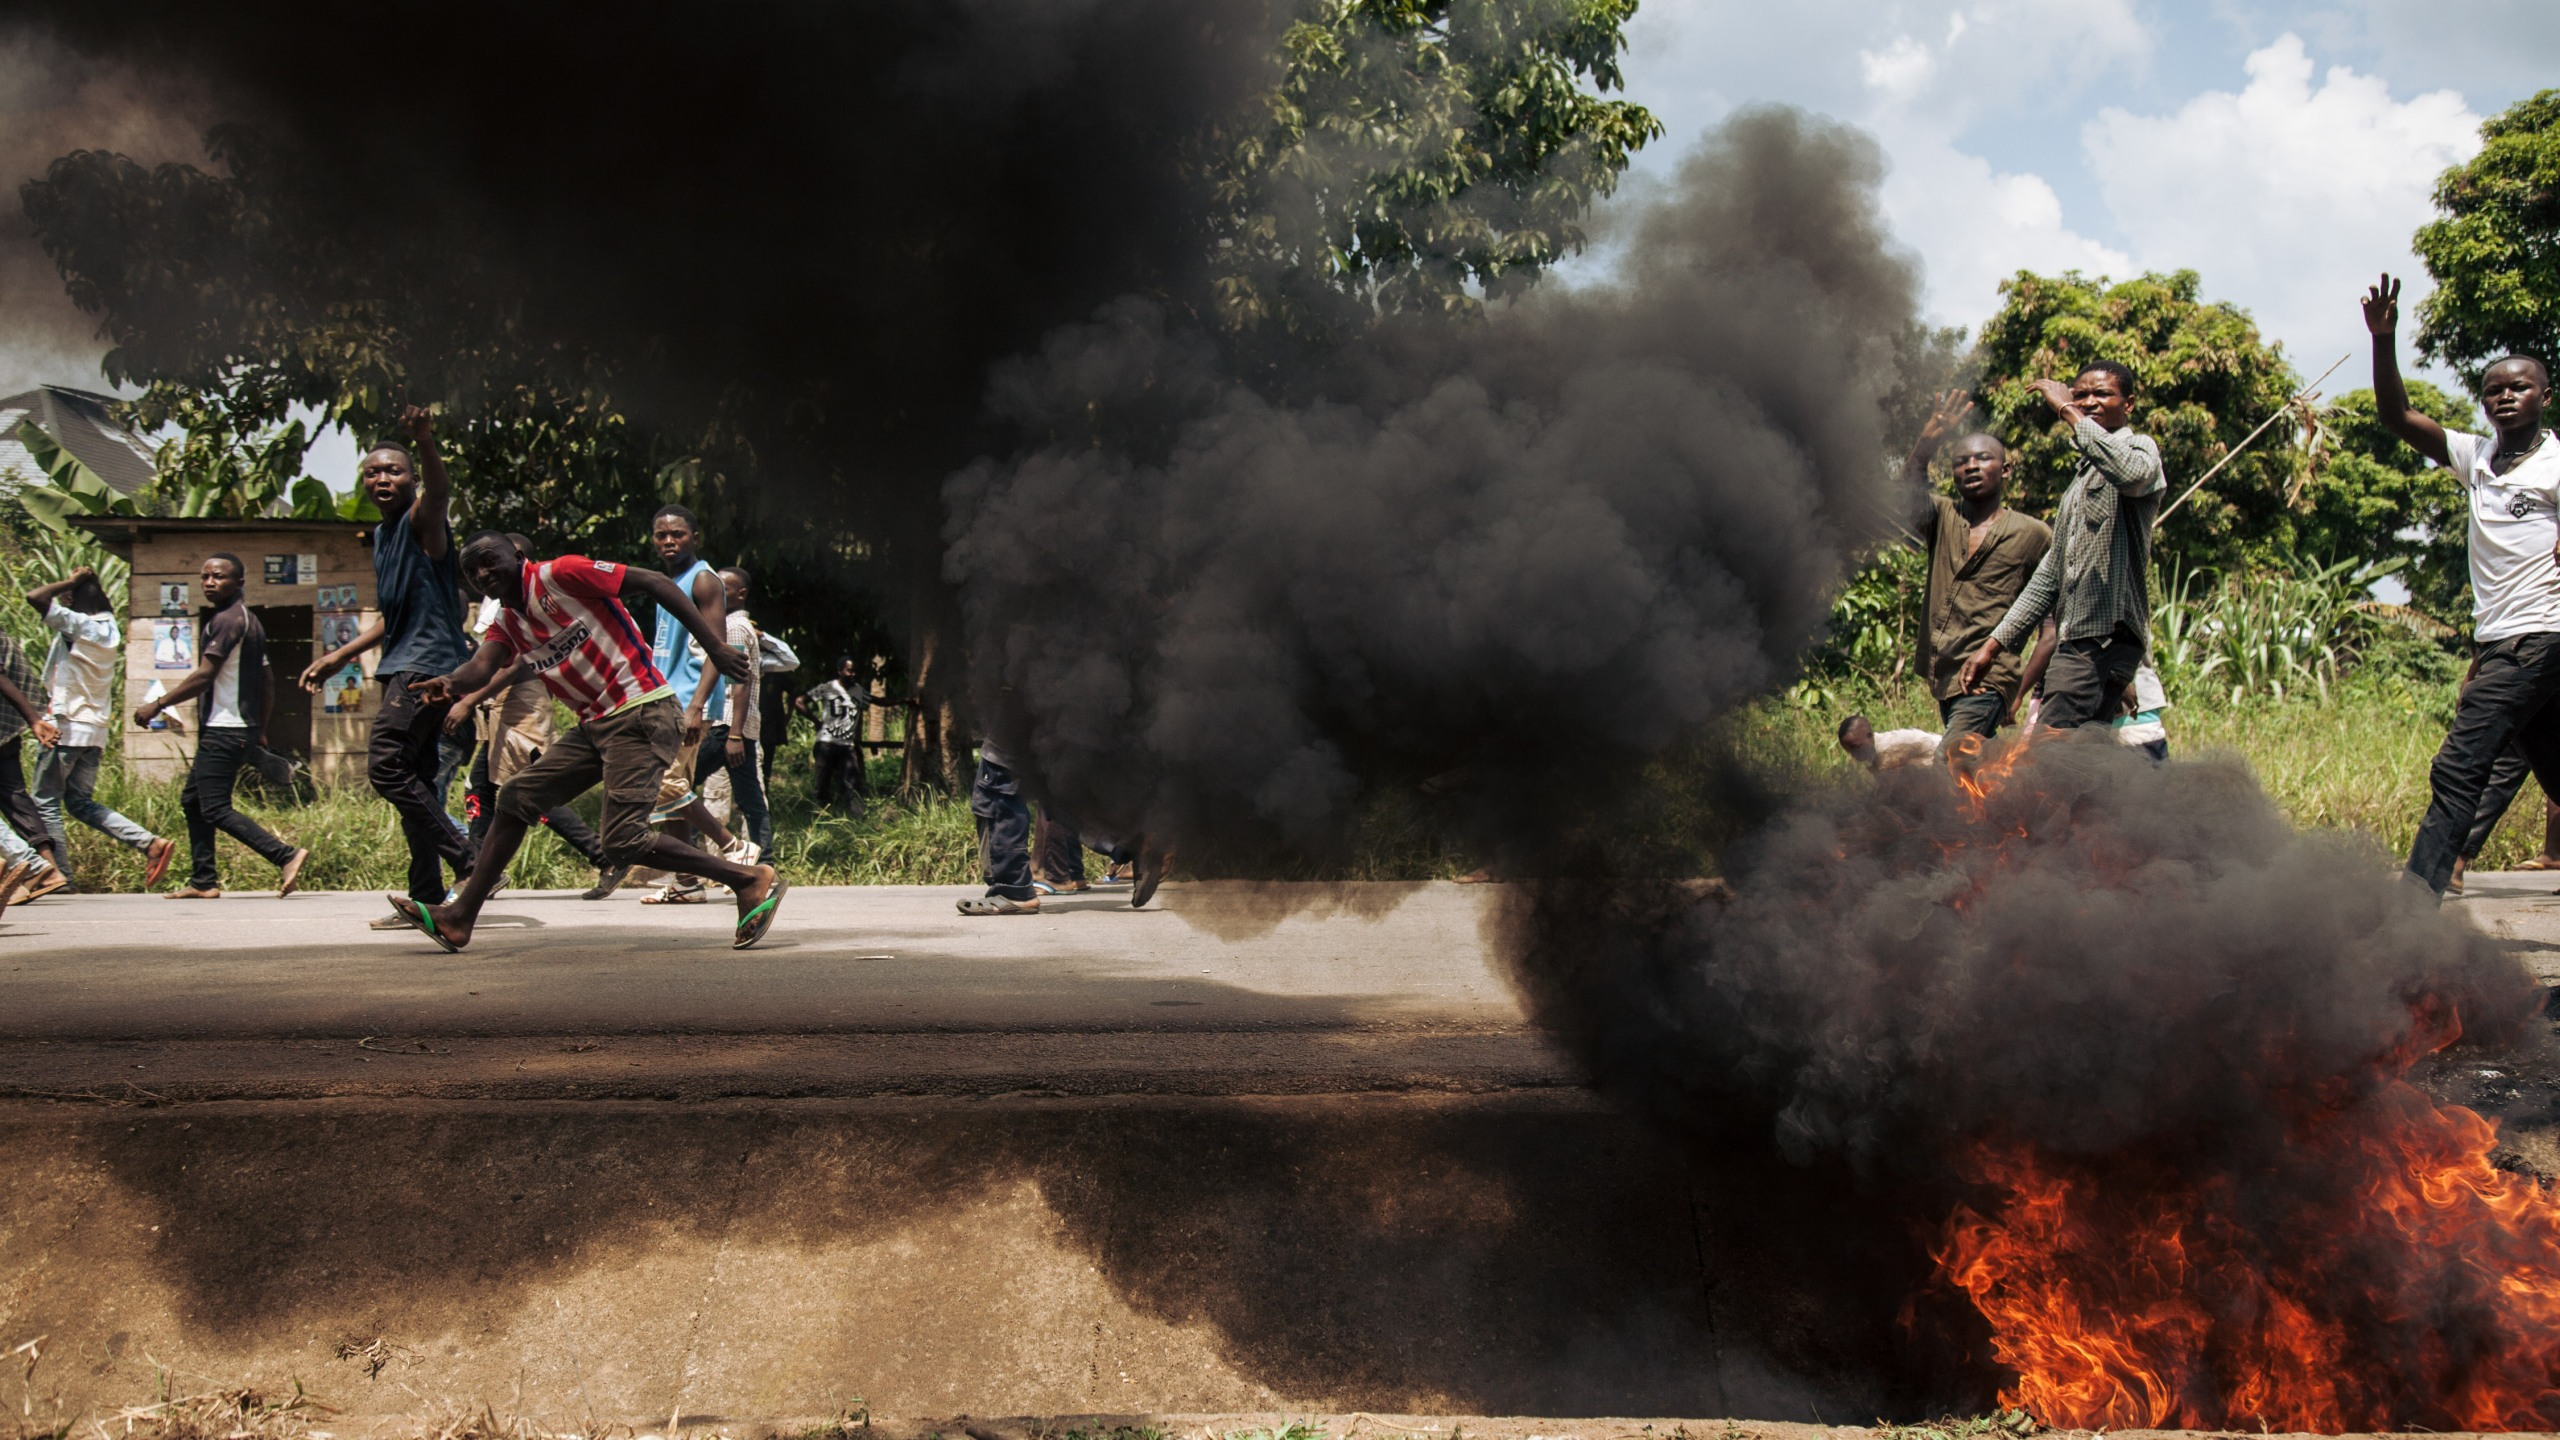 Protesters walk near the electoral commission in Beni during a demonstration against the postponement of elections in the territory of the Beni and the city of Butembo on Dec. 27, 2018. (Credit: ALEXIS HUGUET/AFP/Getty Images)